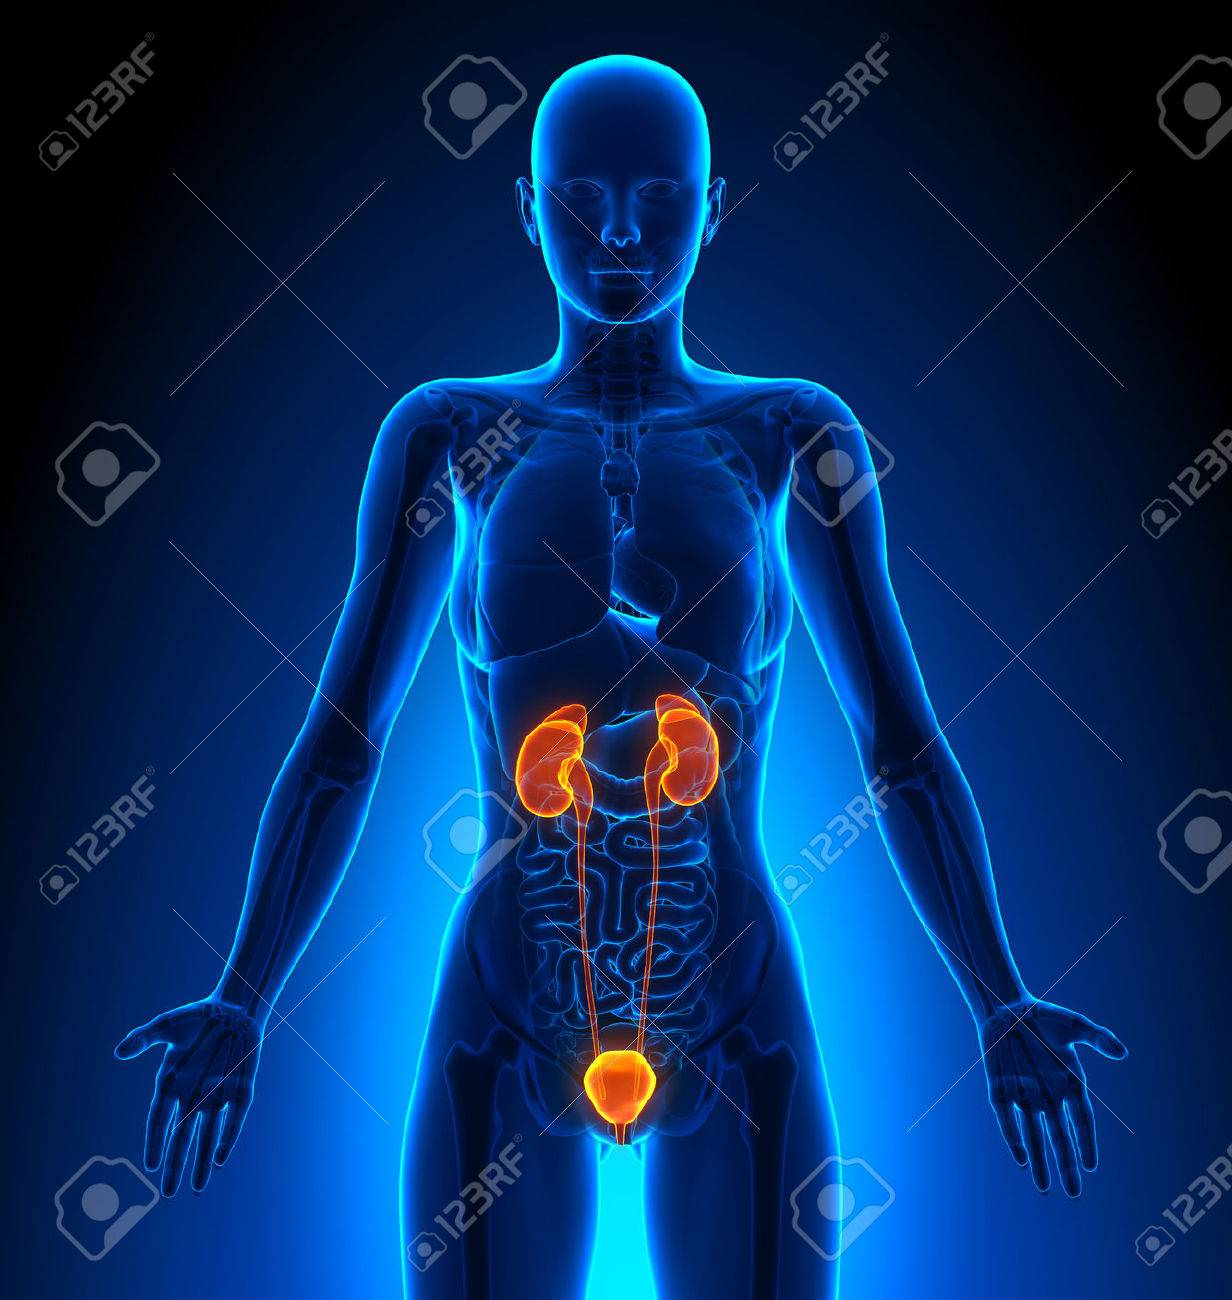 Urinary System Female Organs Human Anatomy Stock Photo Picture